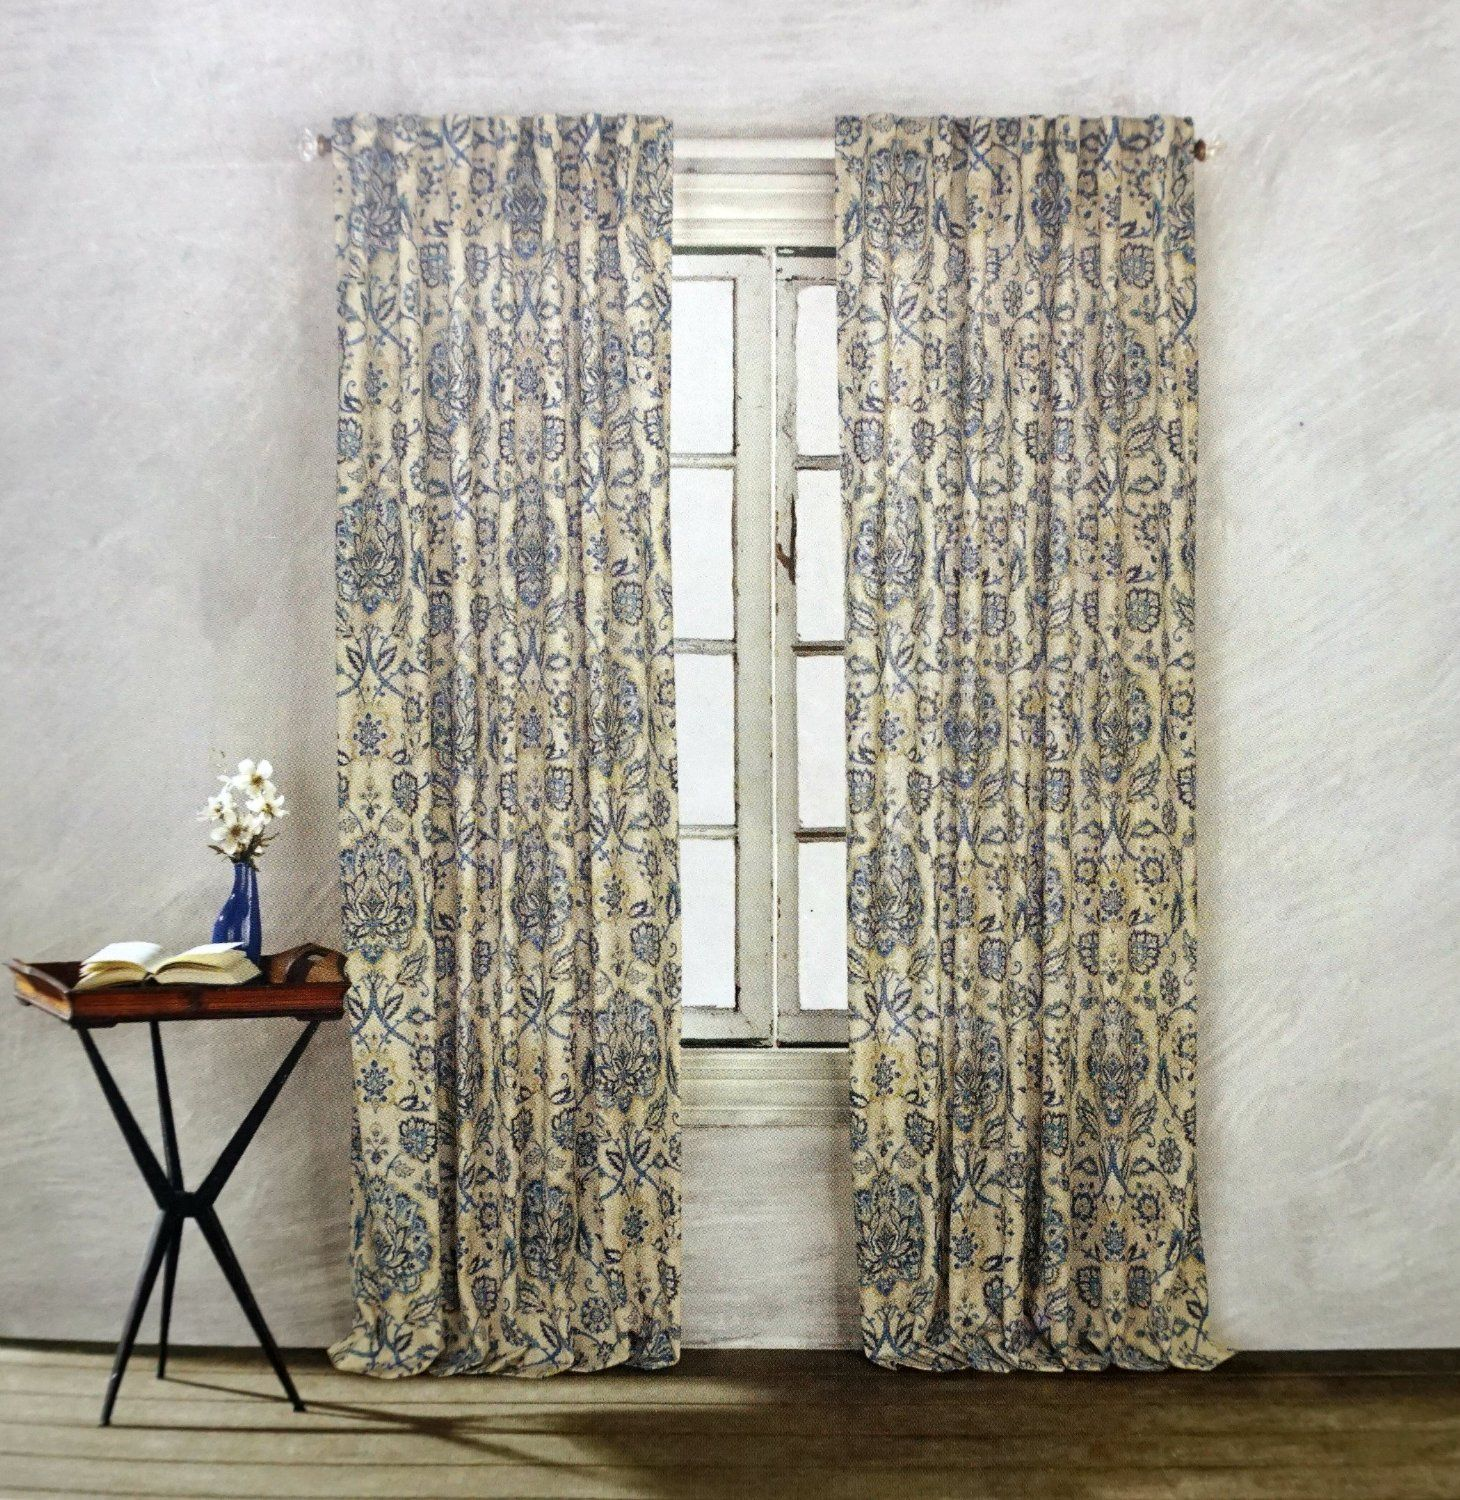 Amazon Com Cynthia Rowley Floral Paisley Scrolls Window Panels 52 By 96 Inch Set Of 2 Floral Paisley Scrolls Linen Wind Curtains Window Panels Window Curtains